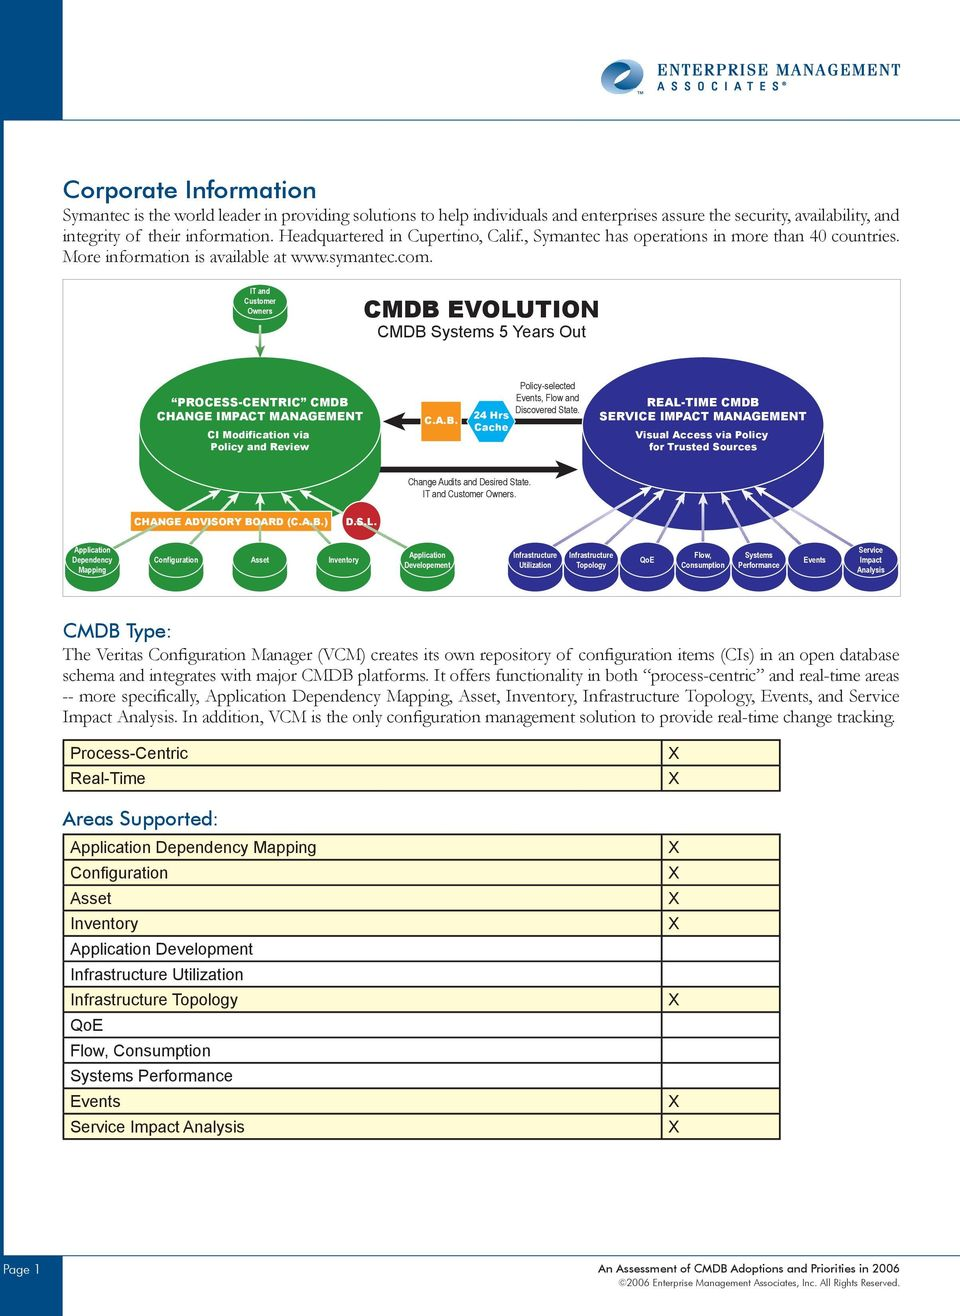 IT and Customer Owners CMDB EVOLUTION CMDB Systems 5 Years Out PROCESS-CENTRIC CMDB CHANGE IMPACT MANAGEMENT CI Modification via Policy and Review C.A.B. 24 Hrs Cache Policy-selected Events, Flow and Discovered State.